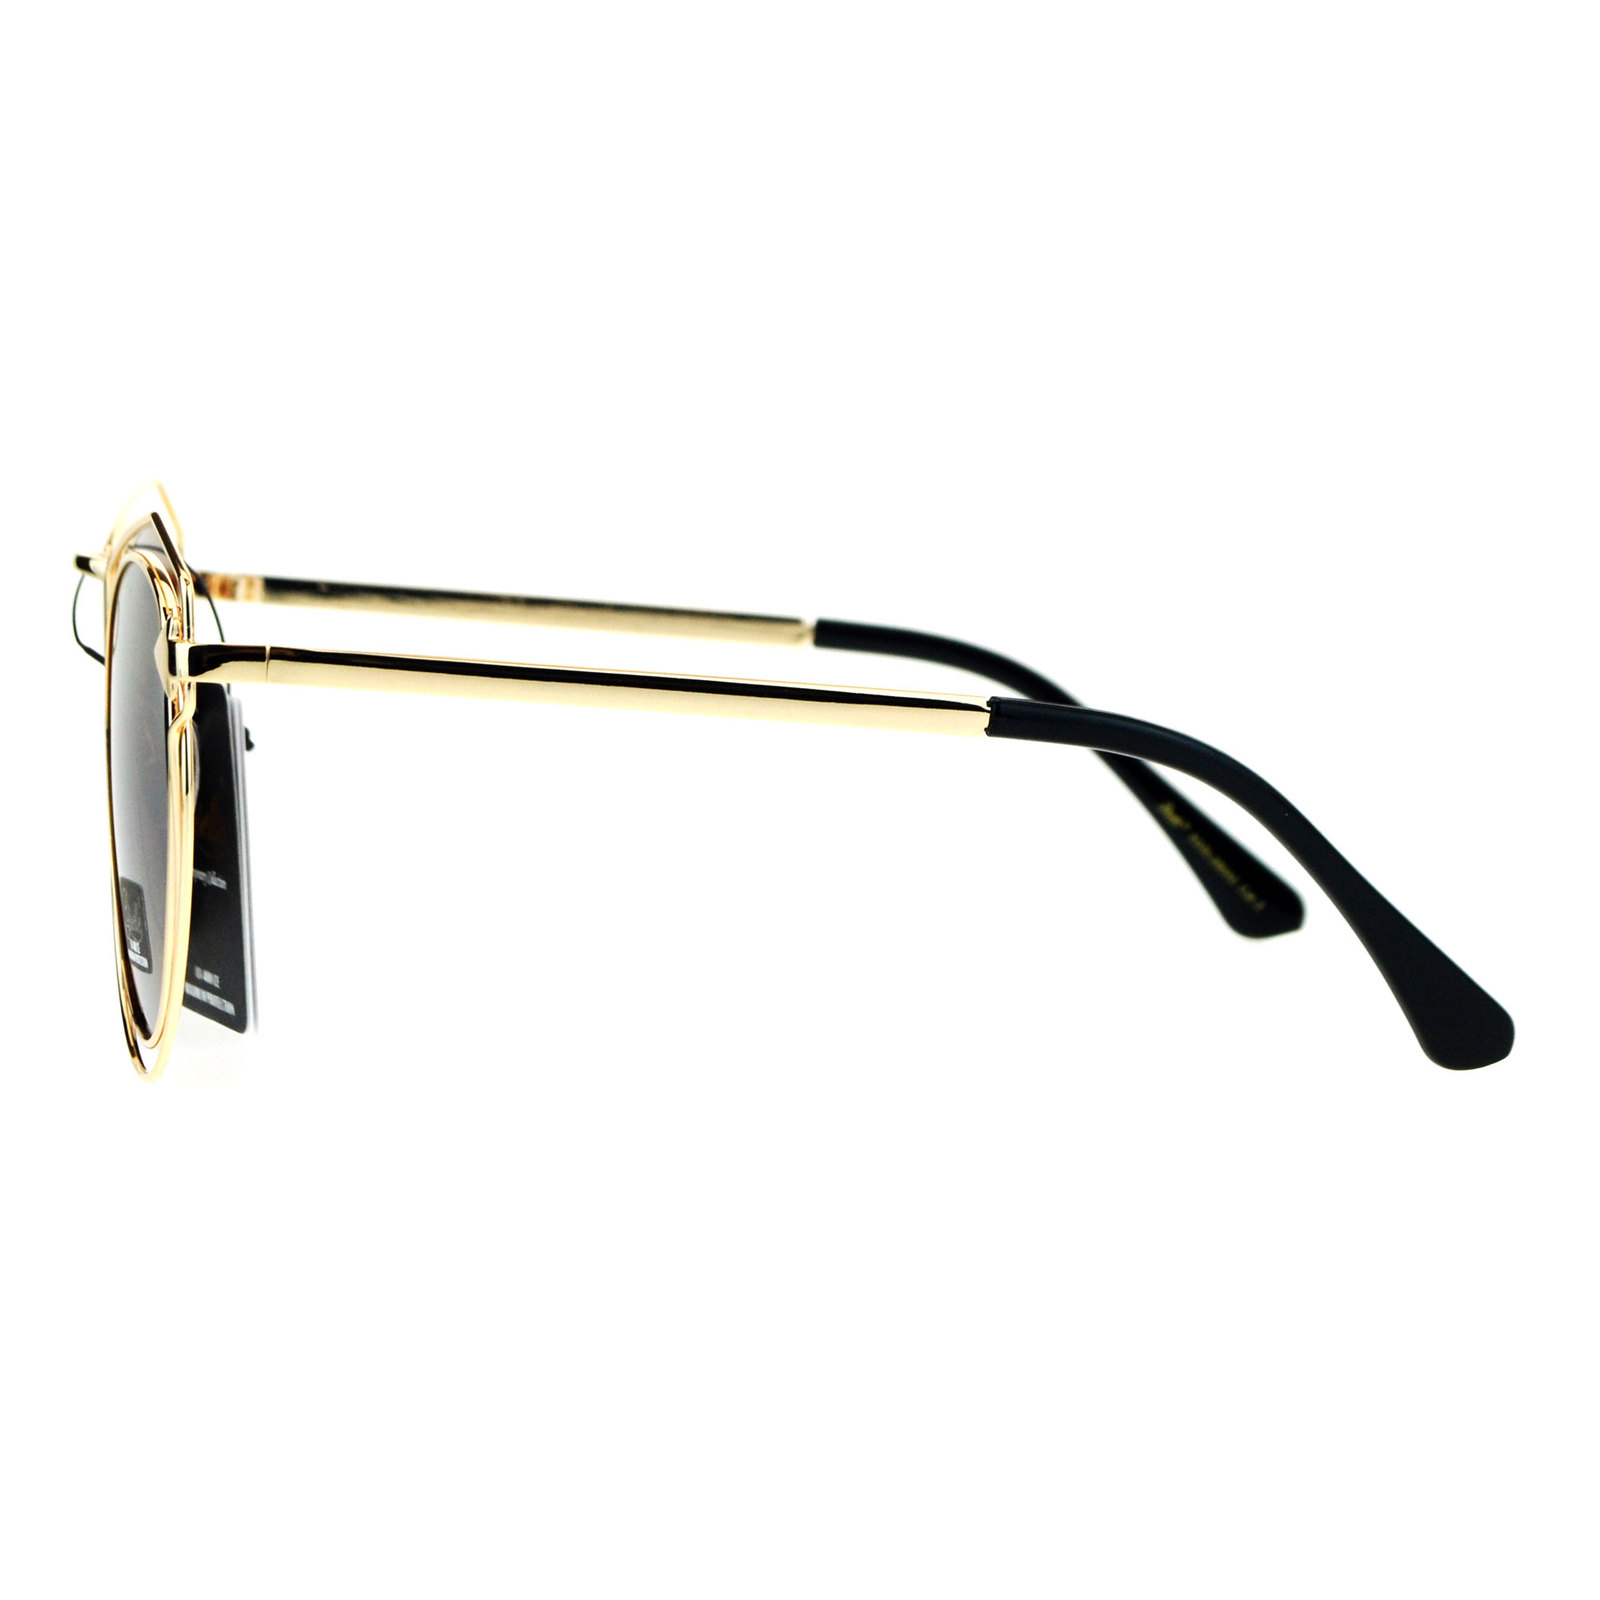 Giselle Wire Metal Rim Horn Rim Designer Fashion Sunglasses